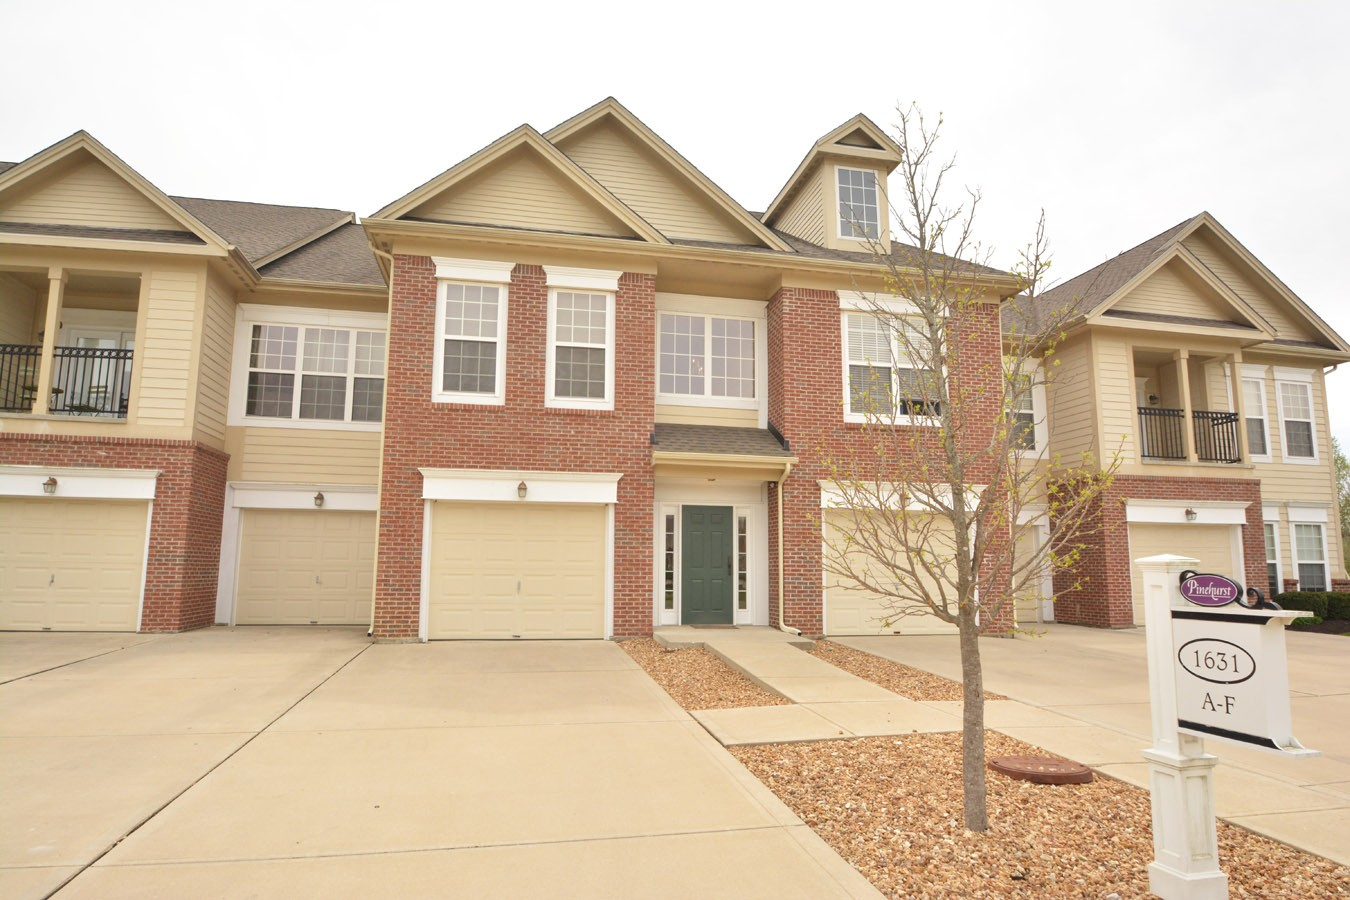 1631 lacebark dr greenwood in 46143 2 bedroom apartment - 2 bedroom apartments greenwood indiana ...